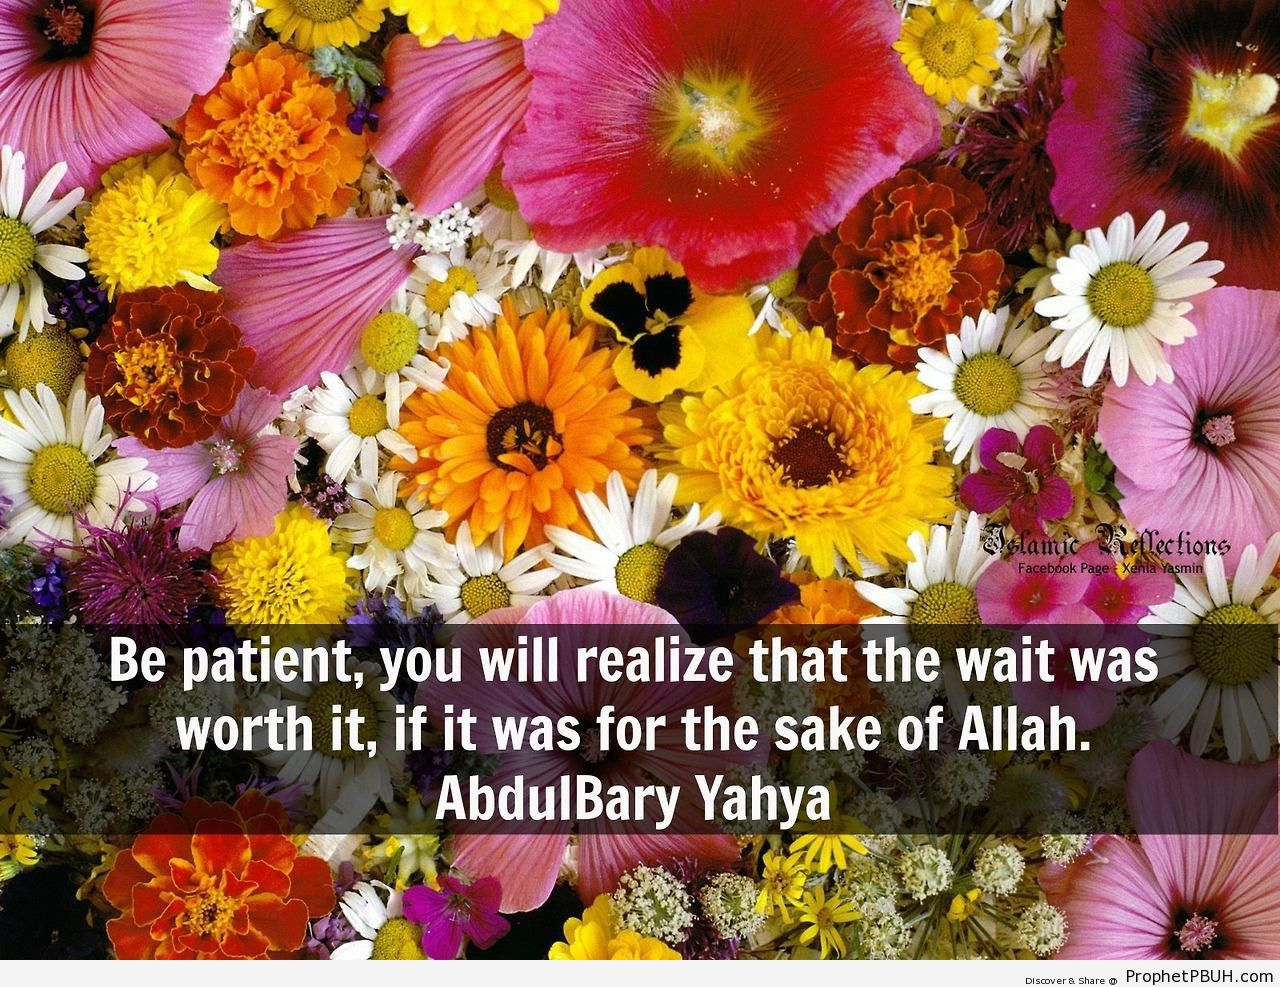 Abdulbary Yahya Quote- Be patient, you will realize& - Abdulbary Yahya Quotes